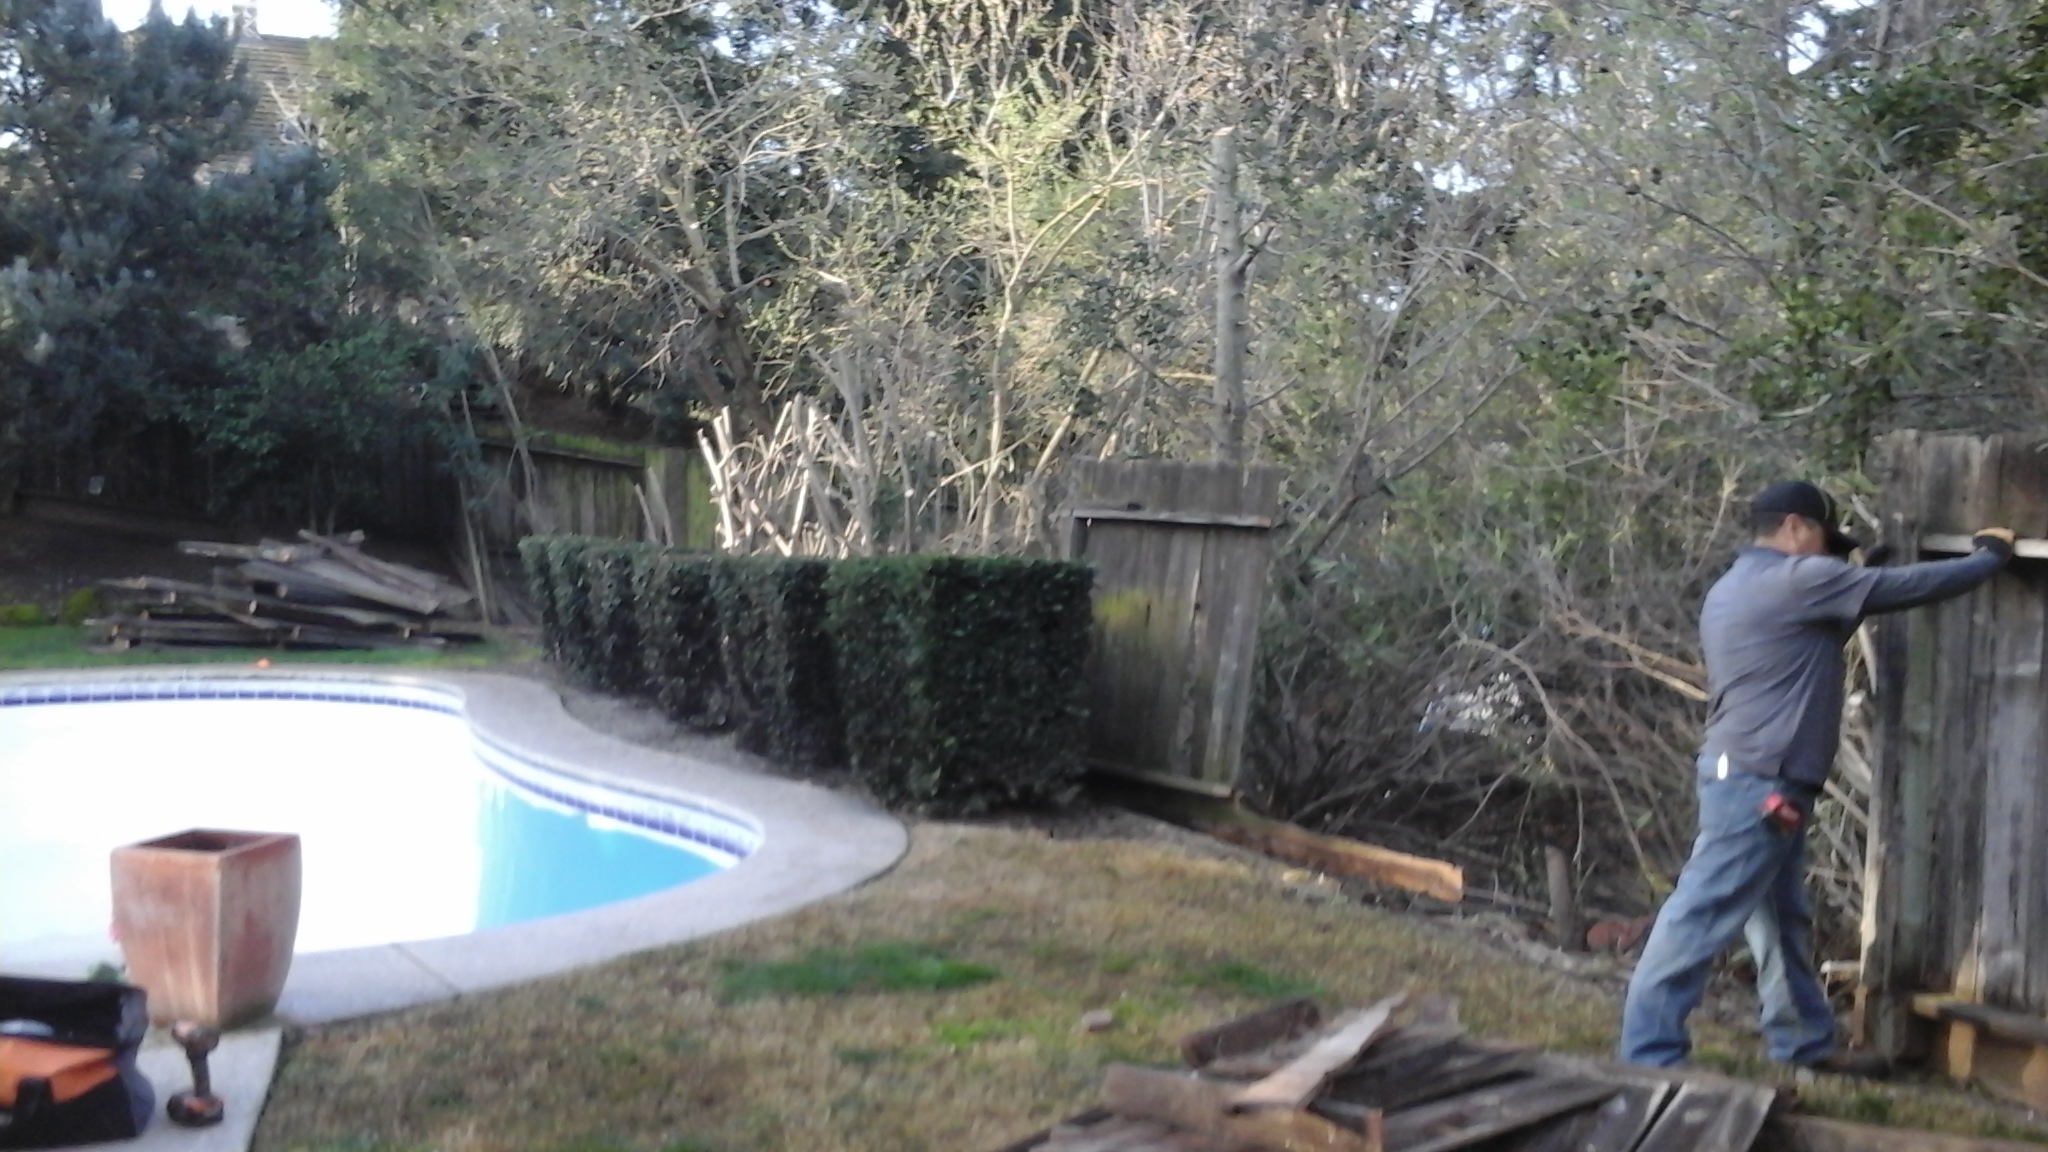 Landscaping of New Fence by Tovar Landscape Co. - Before